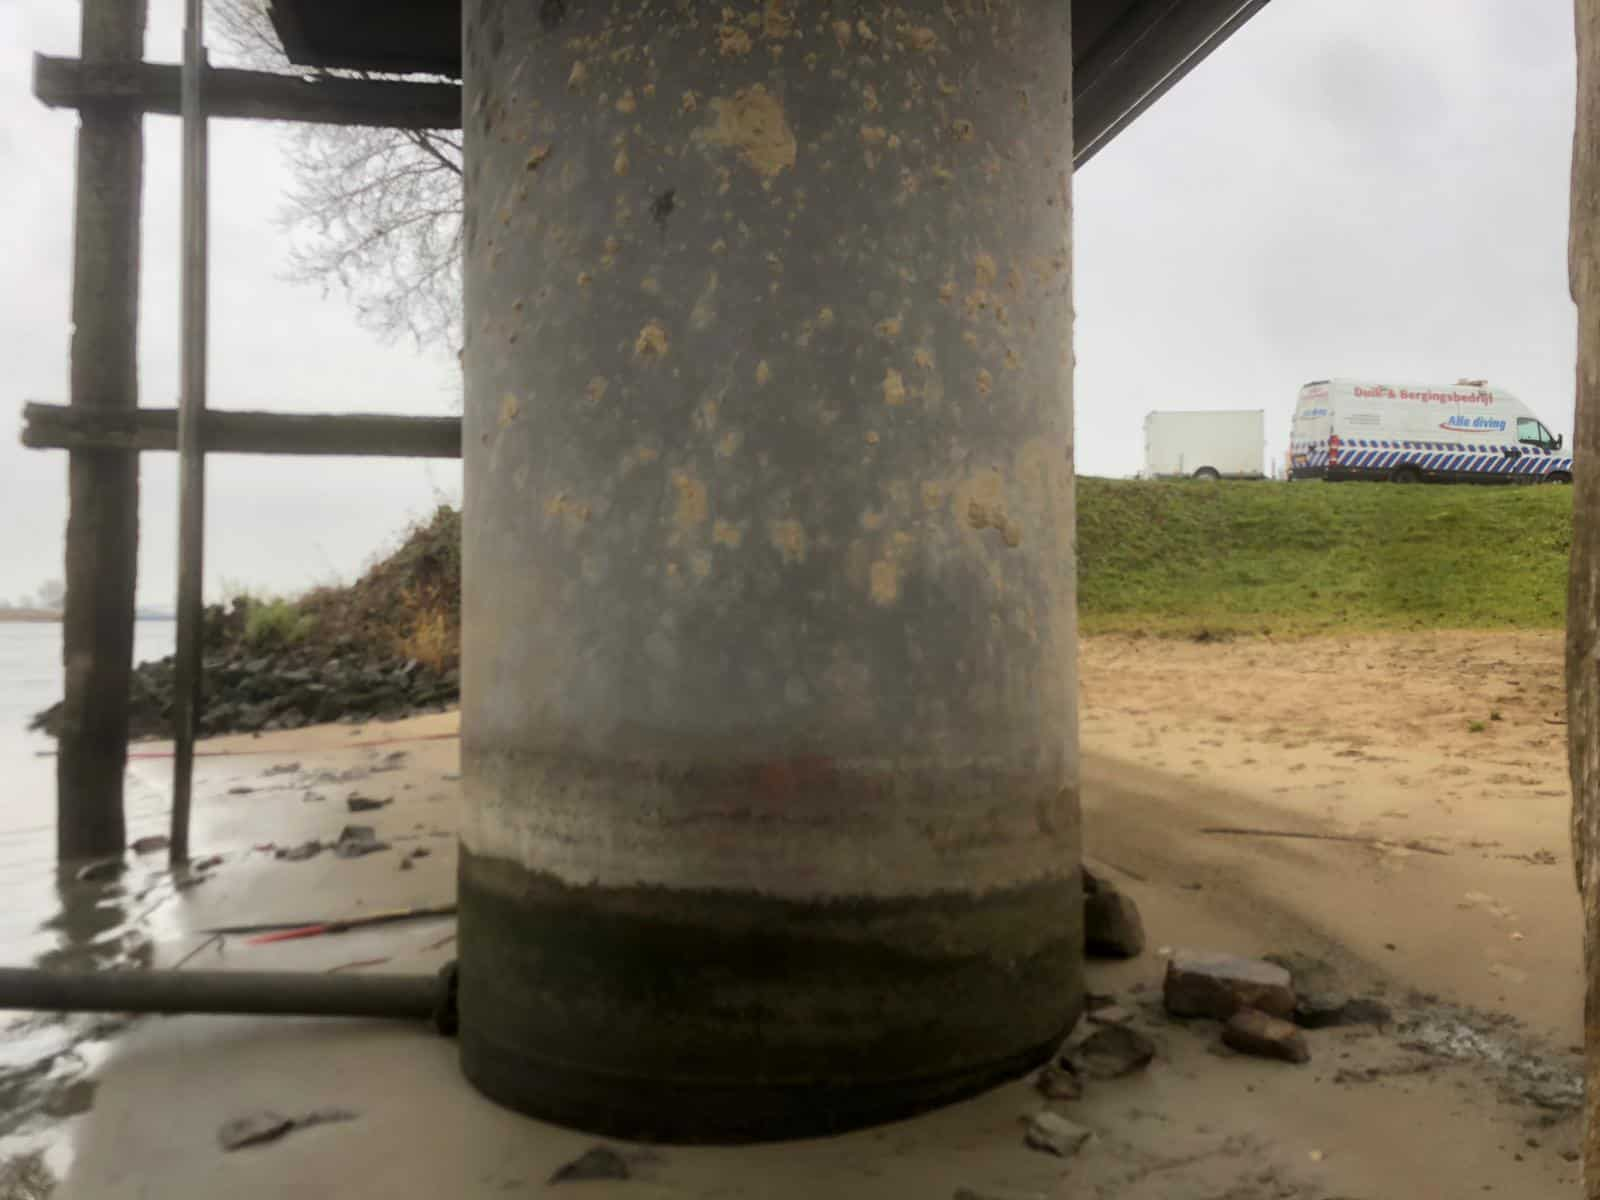 uncoated jetty steel pile showing rusted concrete